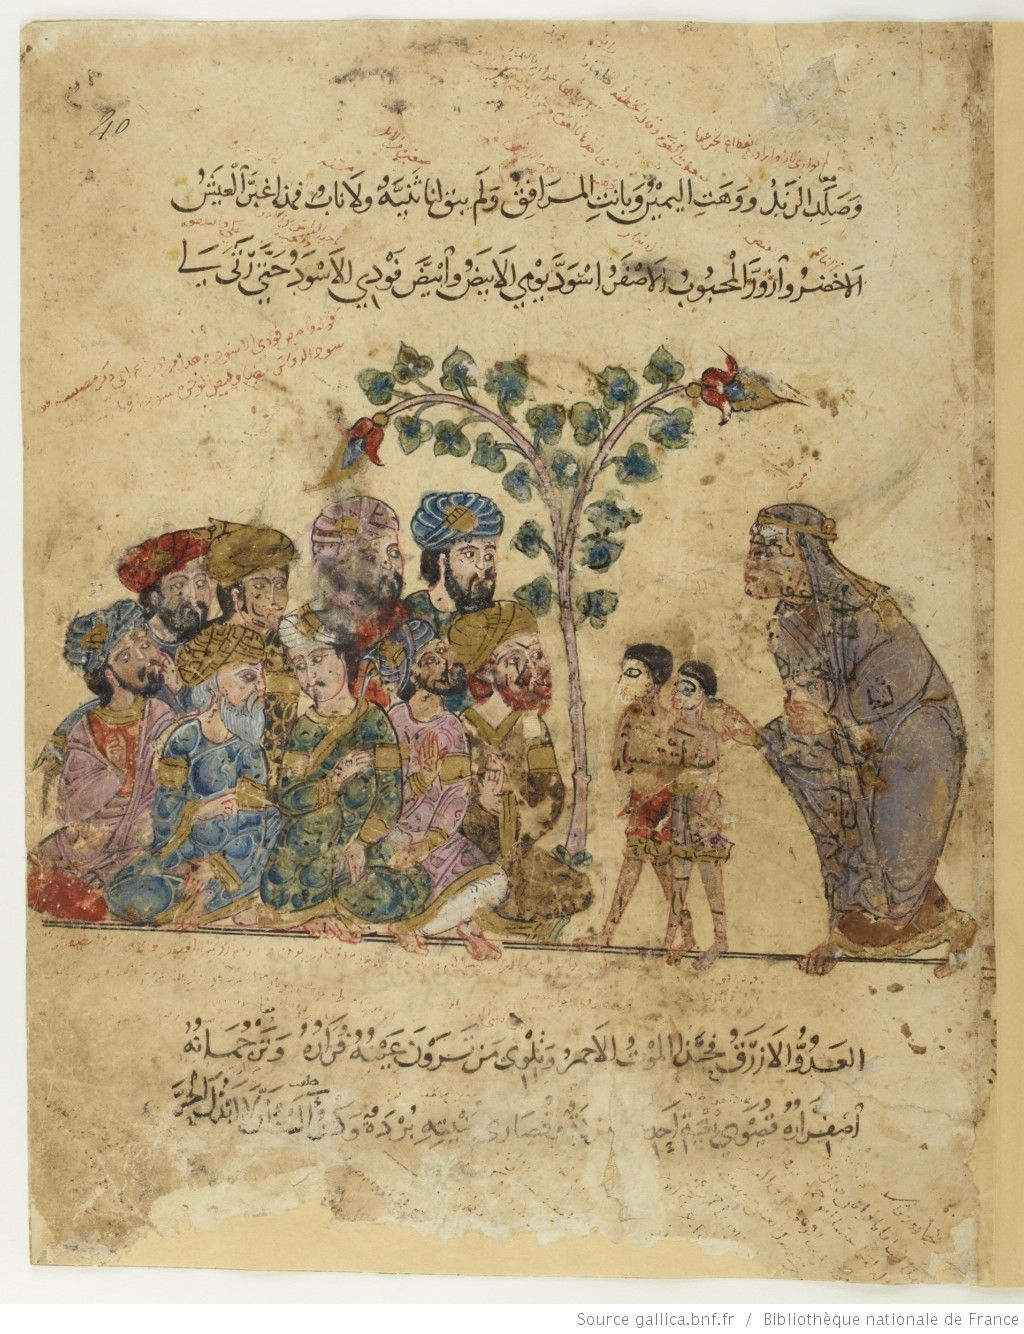 Maqamat of al-Hariri Bibliothèque nationale de France, manuscript Arabe 6094, dated 619H, 1222-23AD: folio 40r, Abu Zayd disguised as an old woman and al-Harith